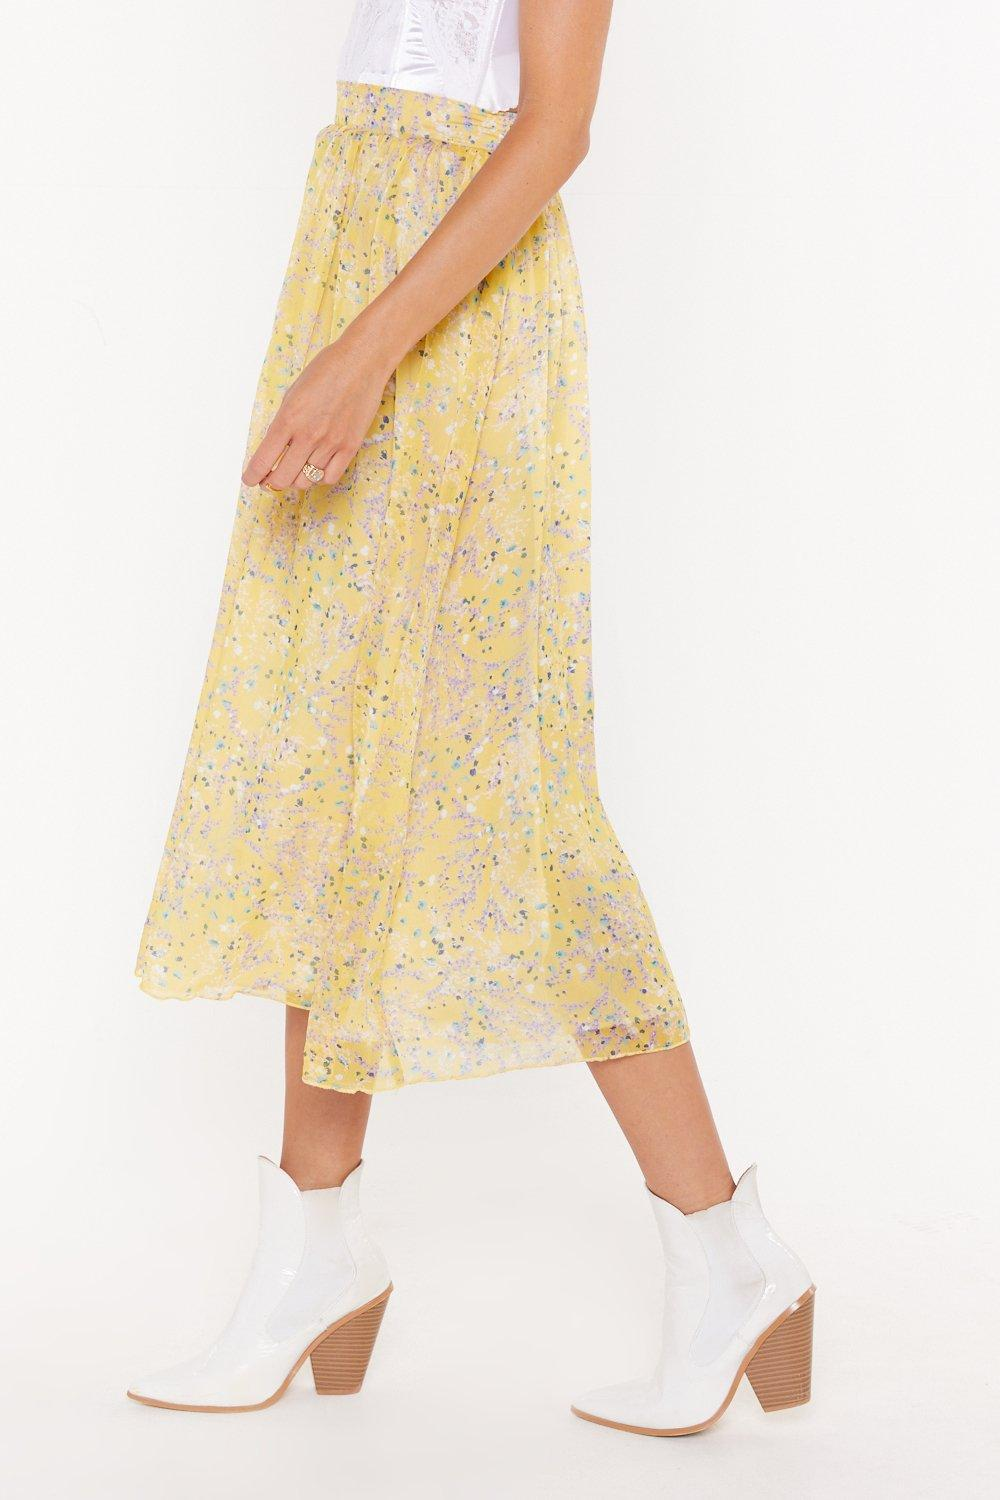 8b0f3110e5aa Listen to the Flower People Floral Midi Skirt | Shop Clothes at ...